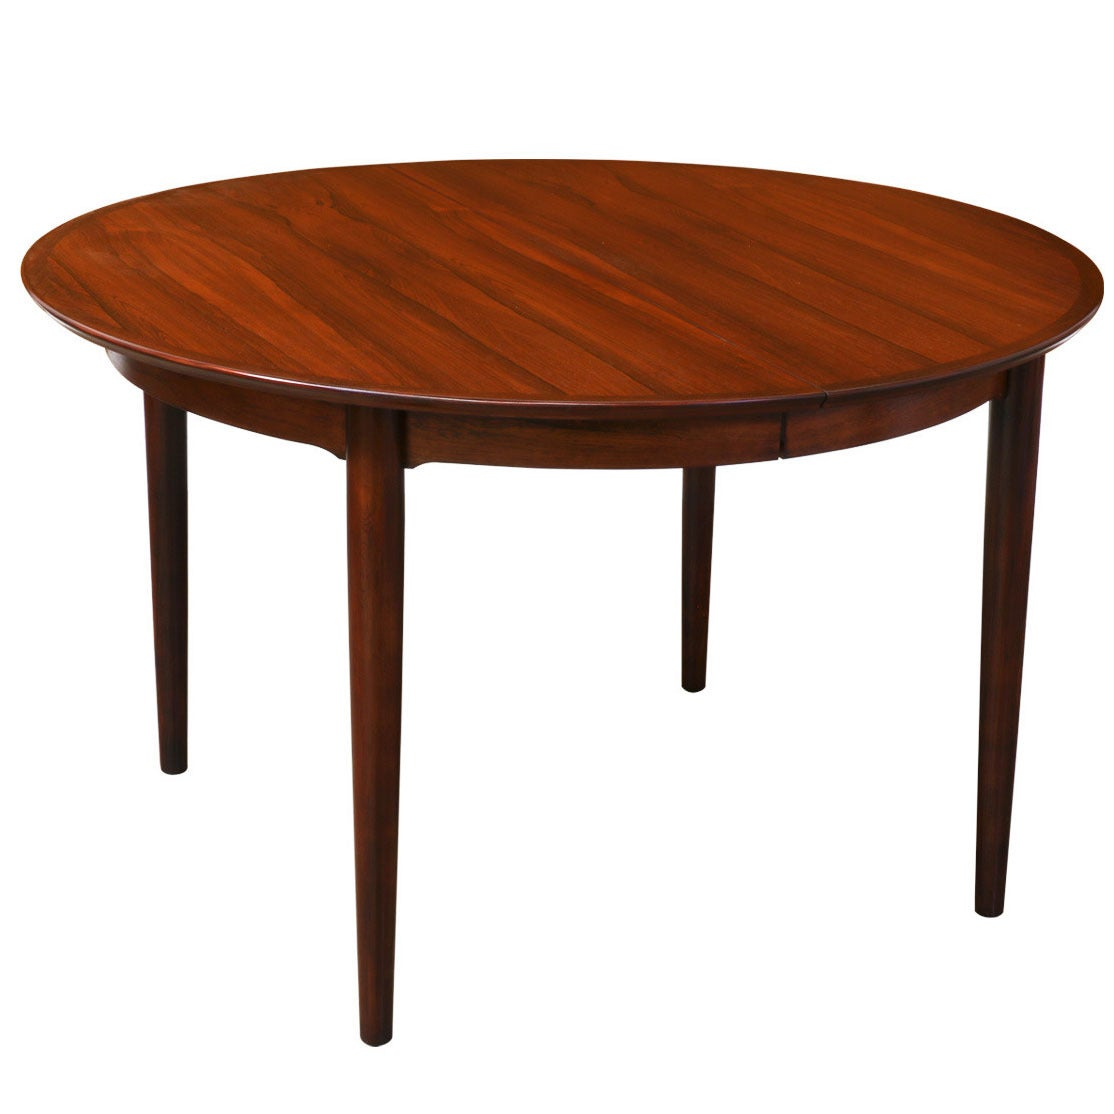 Danish modern rosewood expanding dining table at 1stdibs for Innovative table